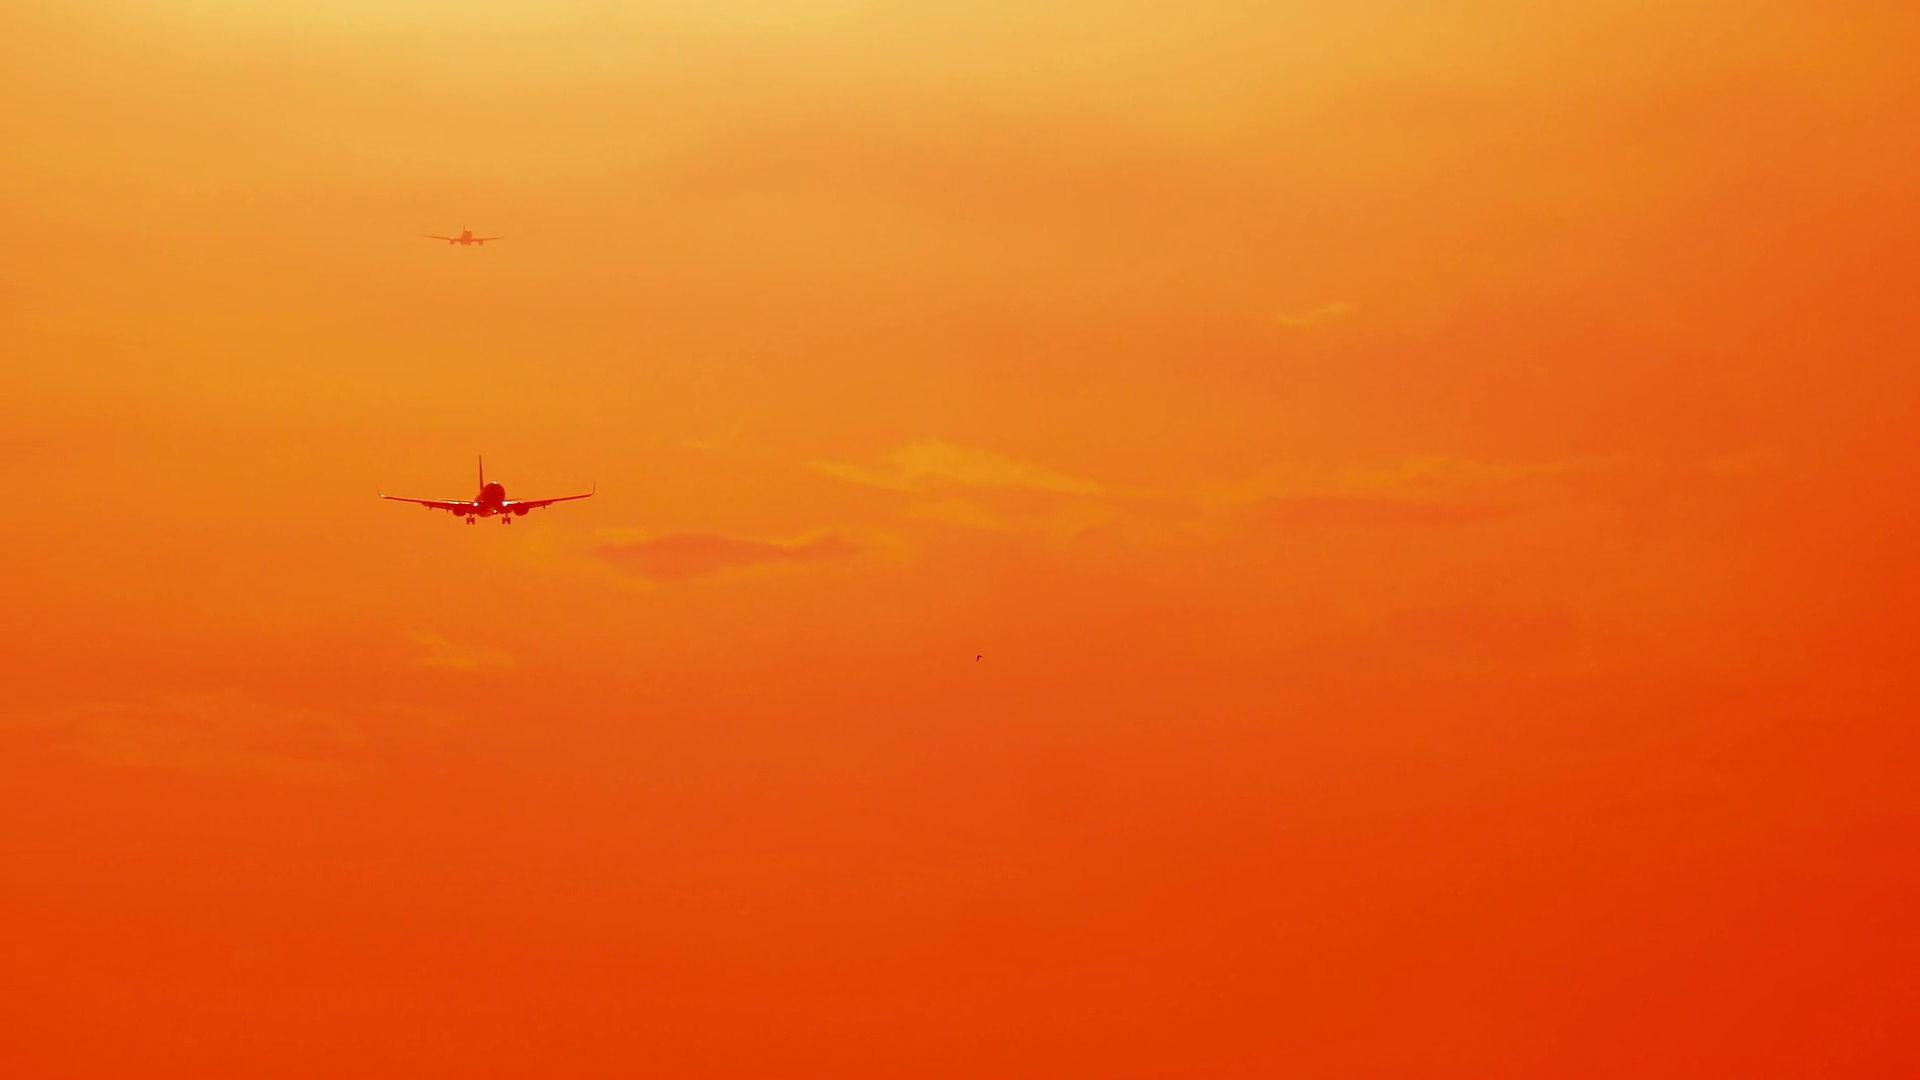 videoblocks-bright-sunny-orange-sunset-sky-with-flying-airplanes-travel-background_bngn5m0uhf_thumbnail-full03